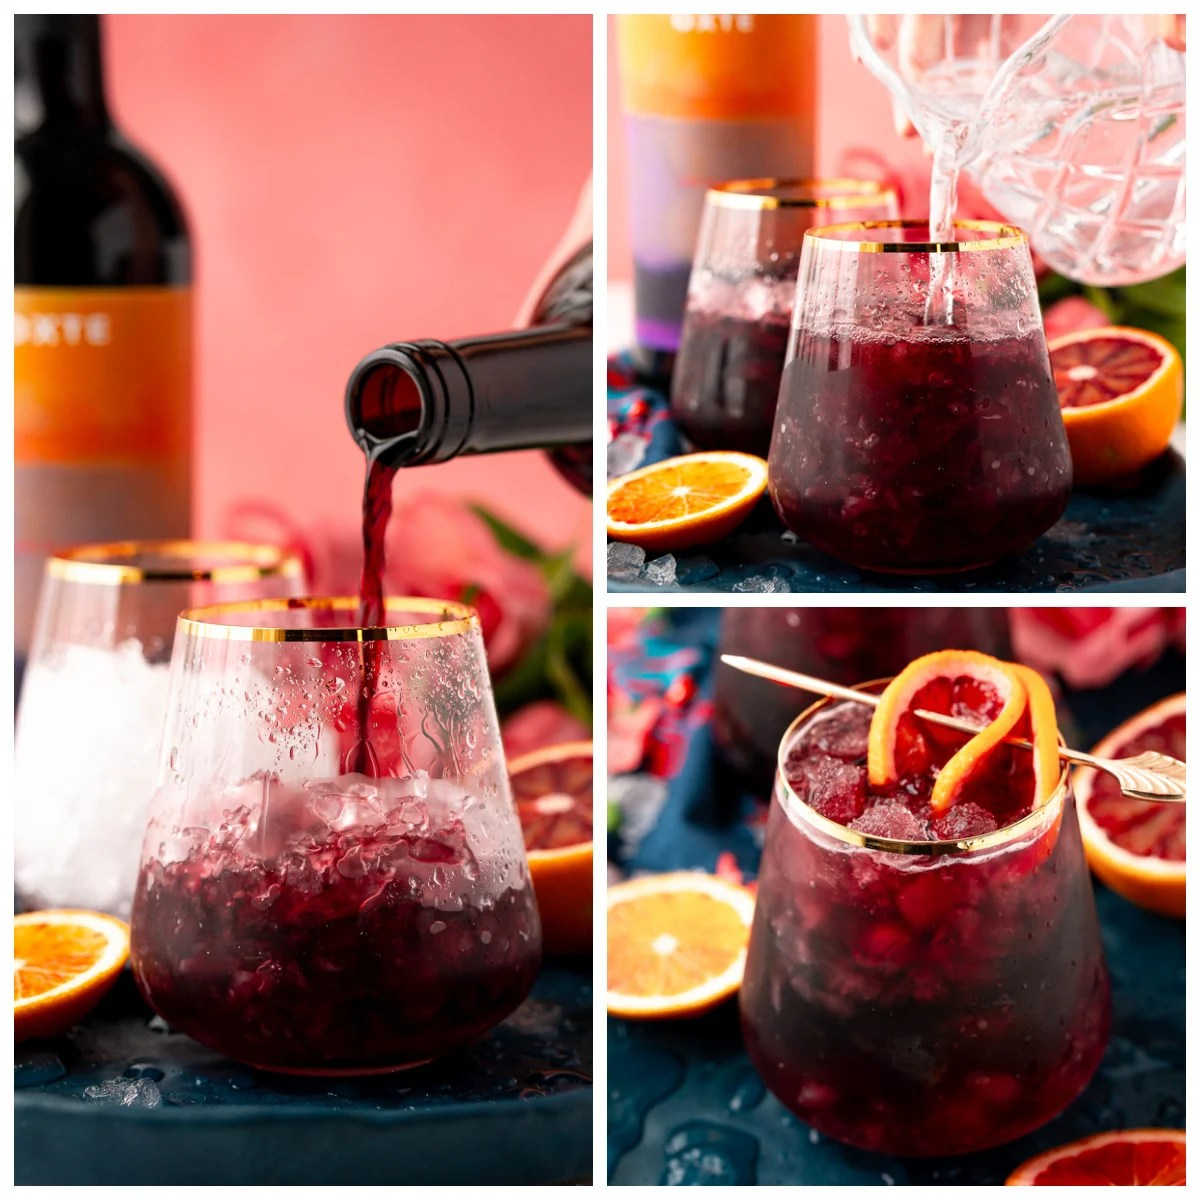 Step by step photos on making a Red Wine Spritzer